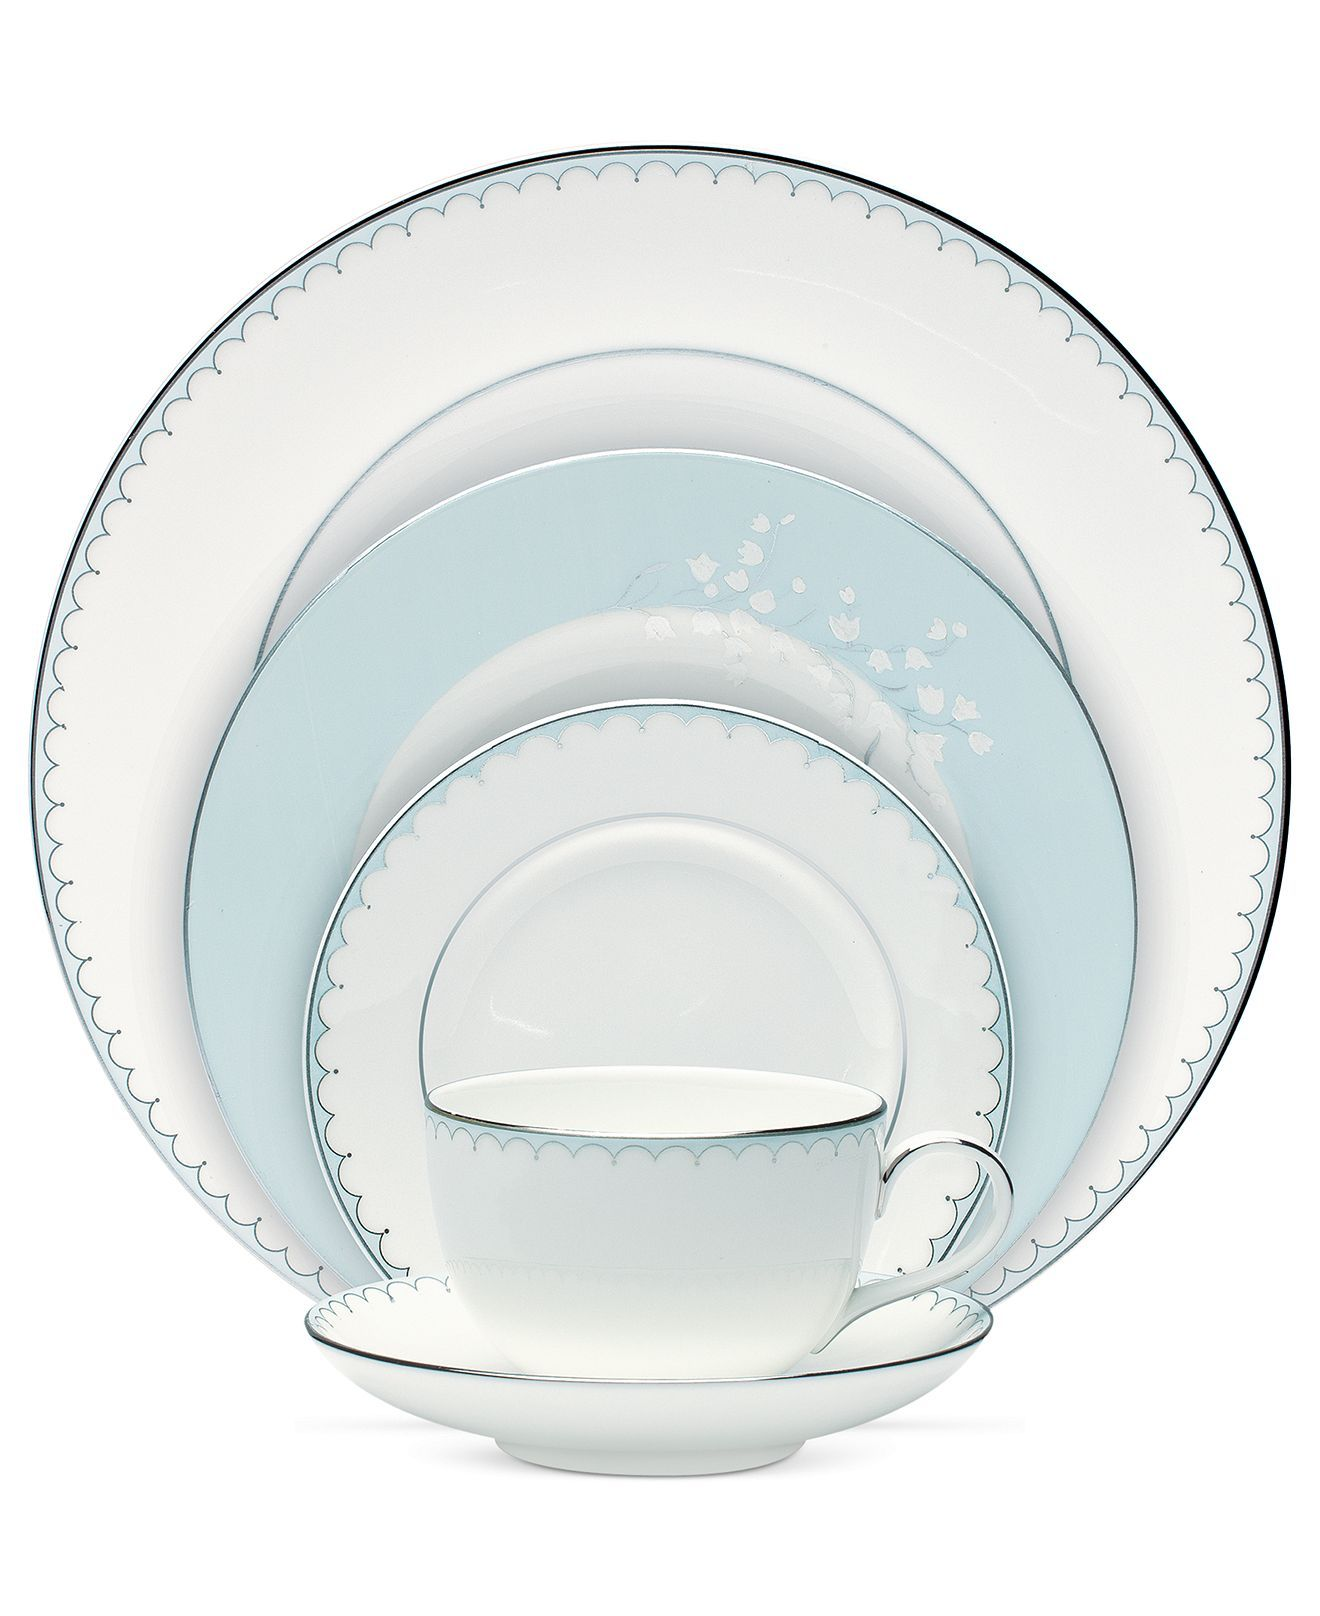 Monique Lhuillier Waterford Dinnerware Lily Of The Valley Blue 5 Piece Place Setting Fine China Dining Entertaining Macys Bridal And Wedding